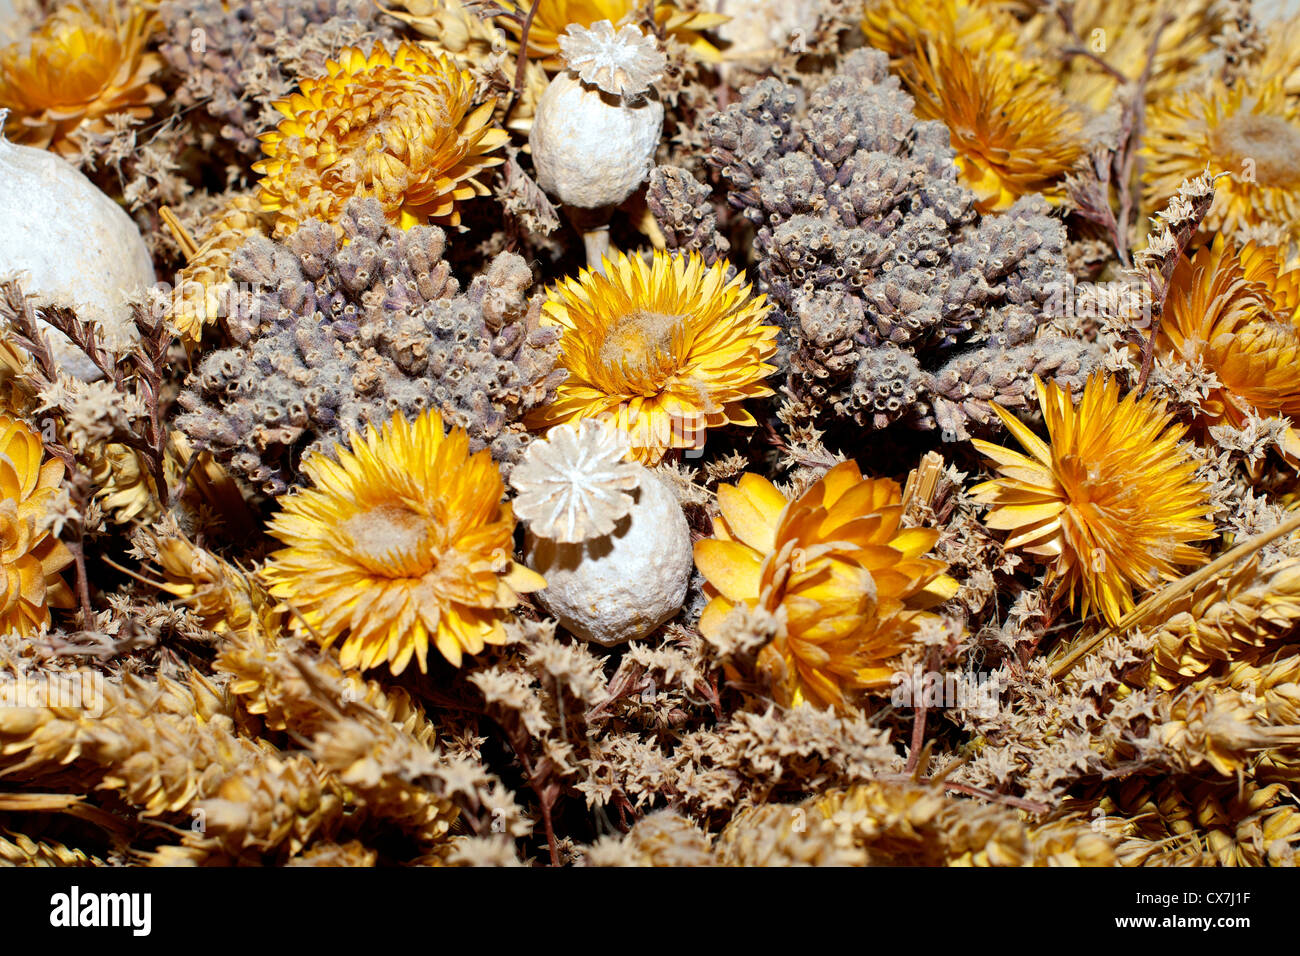 Decoration of dried flowers Stock Photo